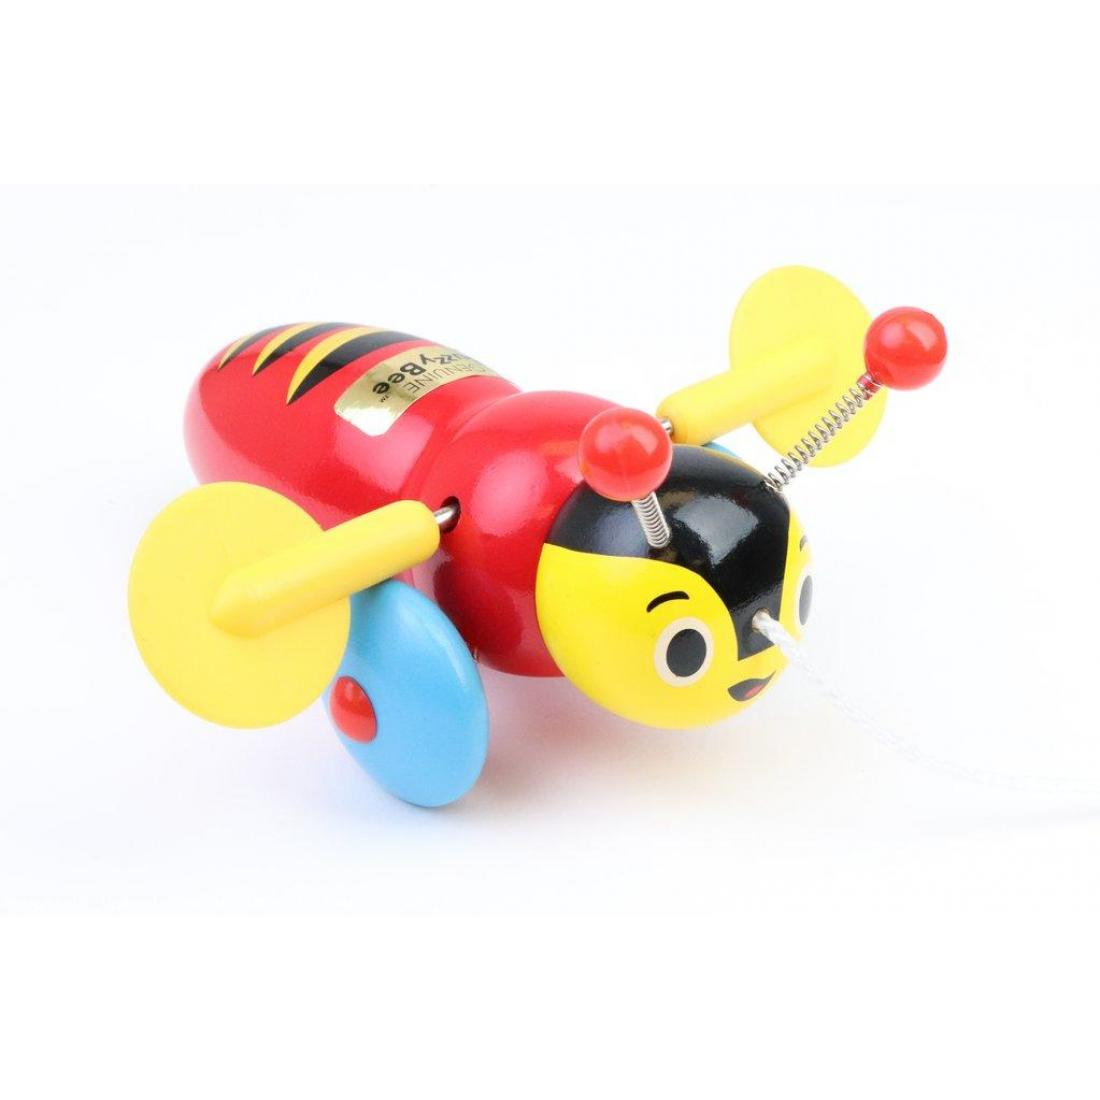 Genuine Buzzy Bee Pull-Along Toy. It clicks as you pull it along. New Zealand's number 1 kiwi icon and a toy that children have enjoyed for more than 50 years.